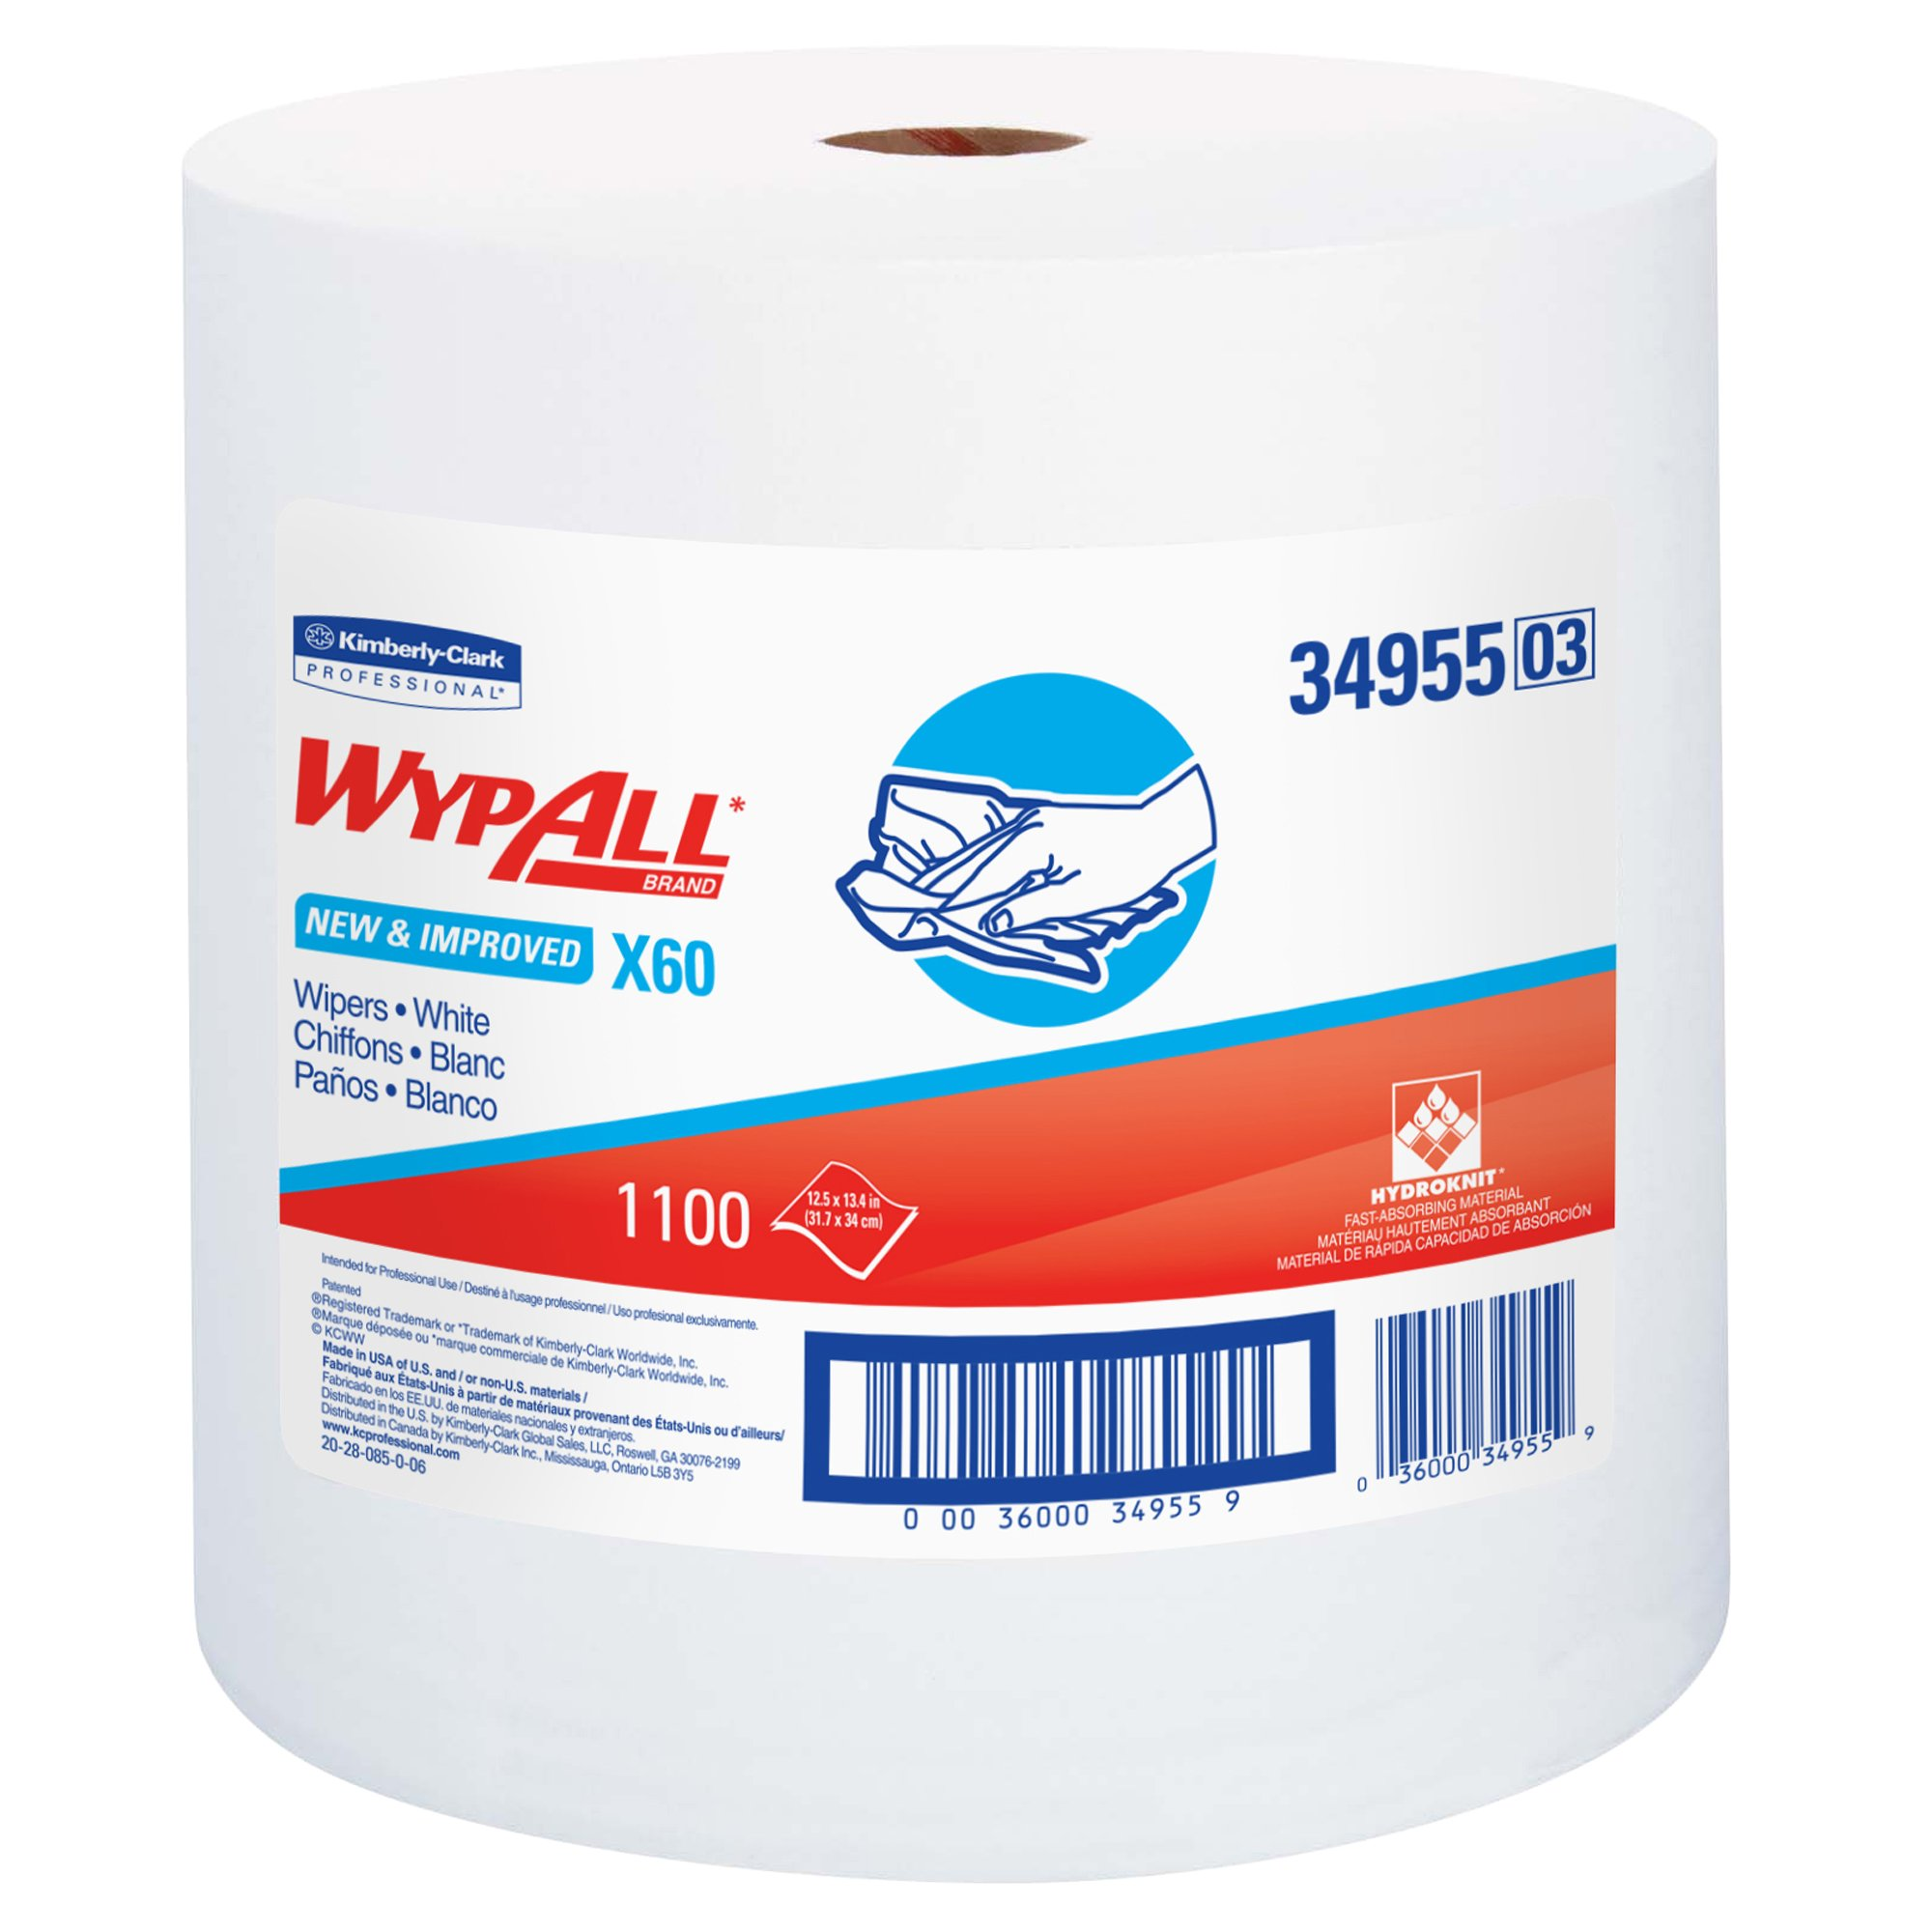 Wypall X60 Reusable Cloths (34955), White, Jumbo Roll, 1100 Sheets / Roll, 1 Roll / Case